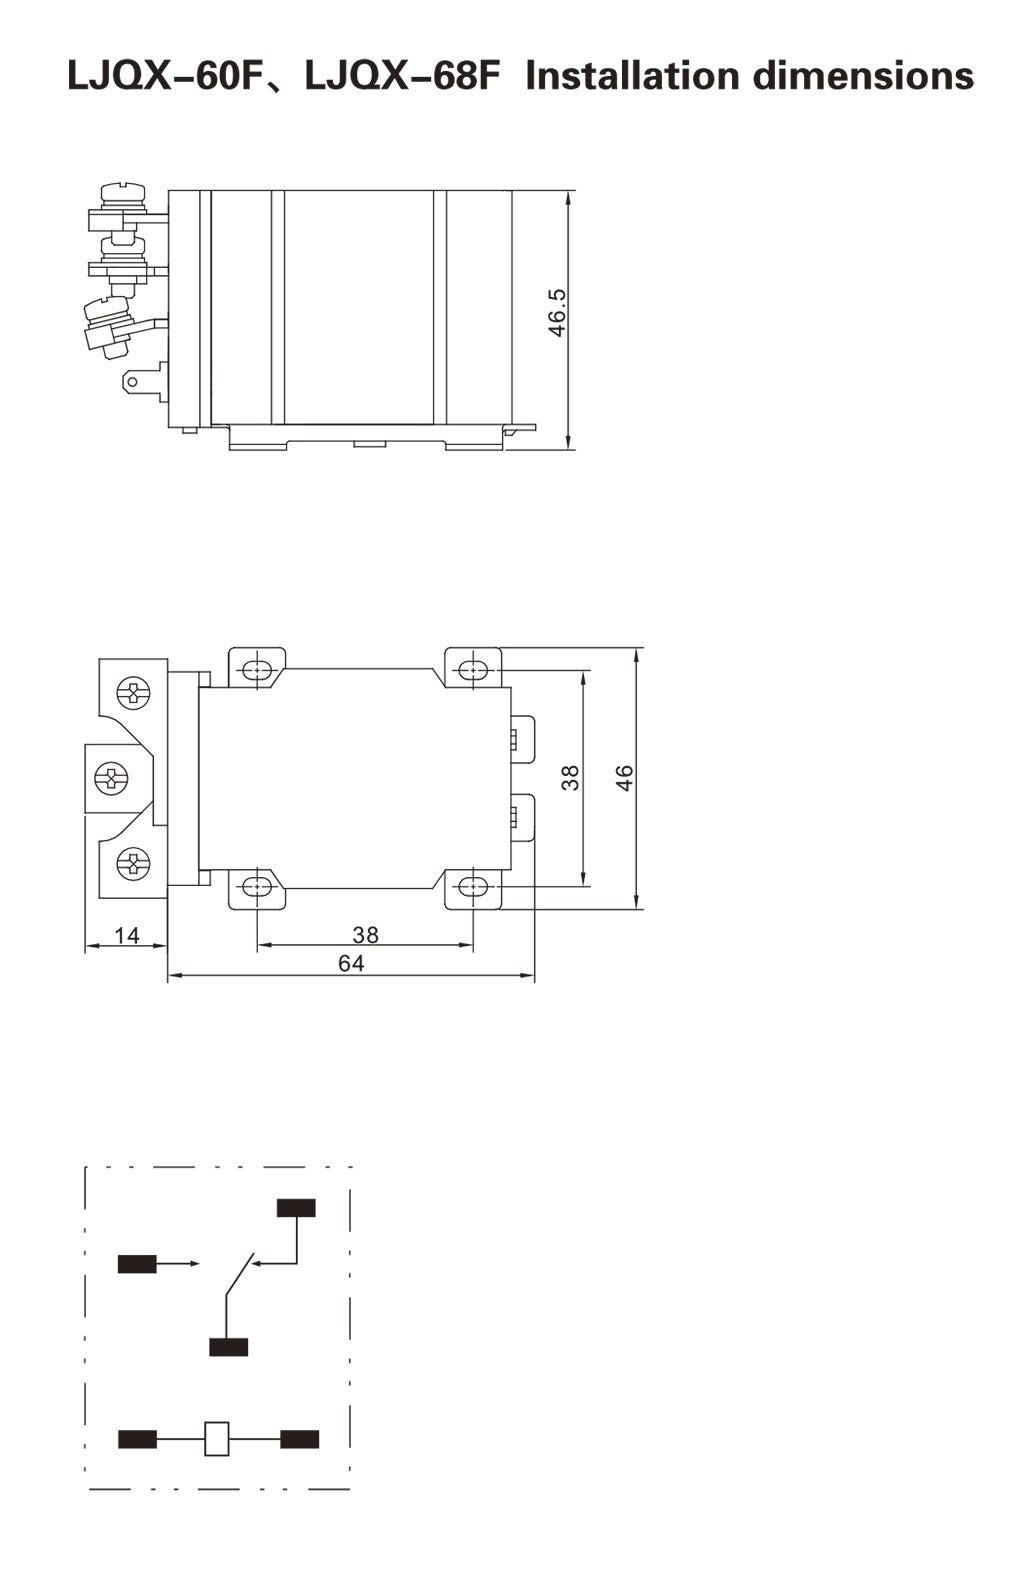 LJQX-60F& LJQX-68F_Installation_Dimensions_and_Connection_Diagram